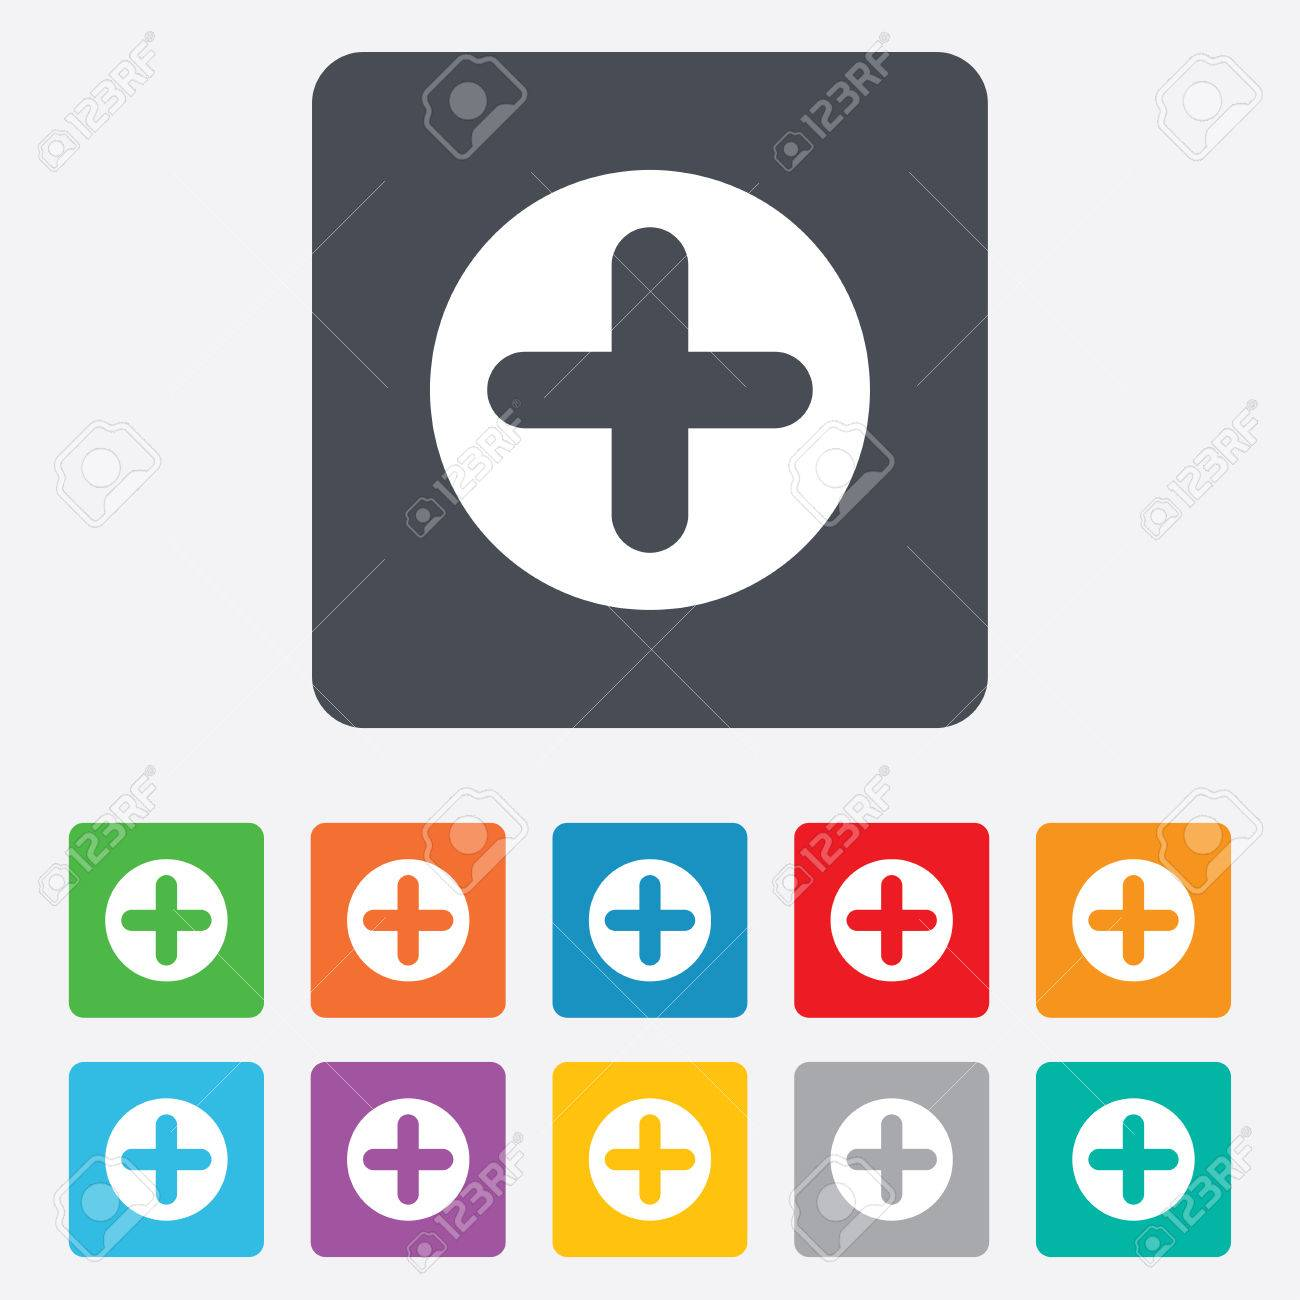 Plus sign icon positive symbol zoom in rounded squares 11 plus sign icon positive symbol zoom in rounded squares 11 buttons vector biocorpaavc Choice Image